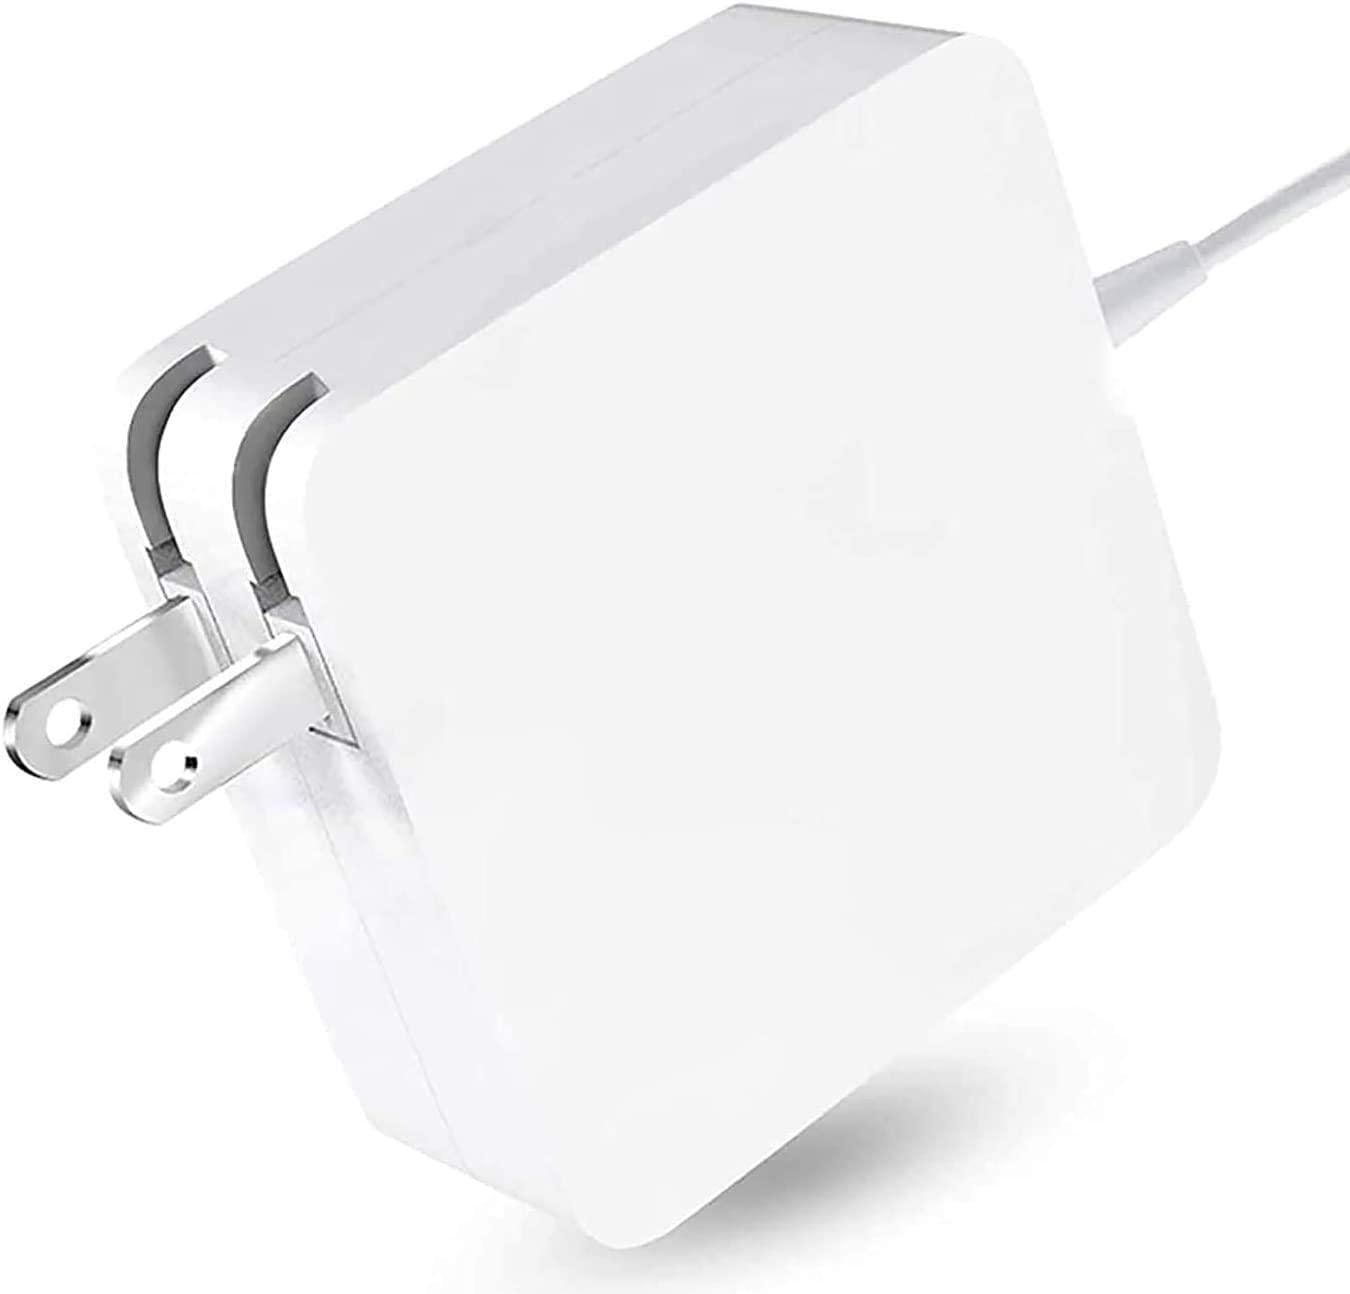 60W Mac Pro Charger Compatible with Mac Pro 11 inch and 13 inch, 60W MagS 2 Charger for Mac Book Pro Retina A1425, A1435, A1502, A1465 and More Mac Models.